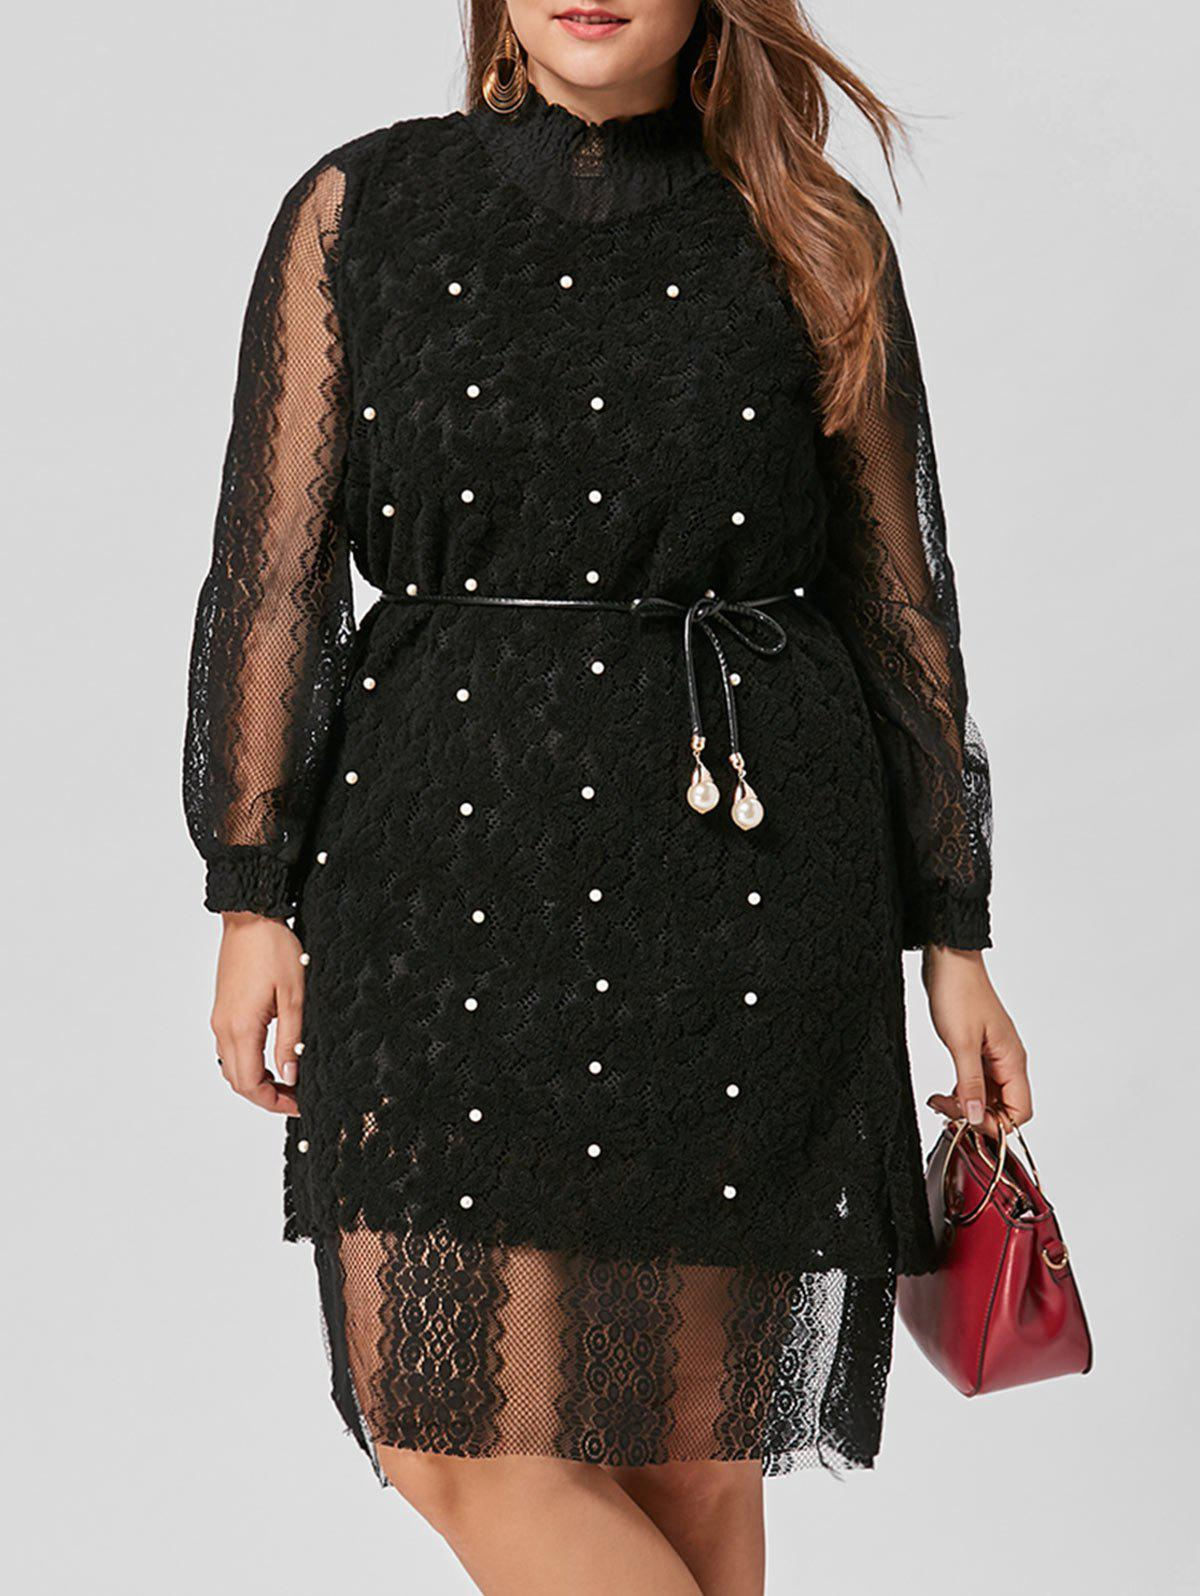 Plus Size Belted Lace Dress with Pearl Embellished VestWOMEN<br><br>Size: 2XL; Color: BLACK; Style: Casual; Material: Cotton,Polyester; Silhouette: Straight; Dresses Length: Knee-Length; Neckline: Ruffled; Sleeve Length: Long Sleeves; Embellishment: Pearls; Pattern Type: Solid; With Belt: Yes; Season: Fall; Weight: 0.5700kg; Package Contents: 1 x Dress  1 x Vest  1 x Belt;